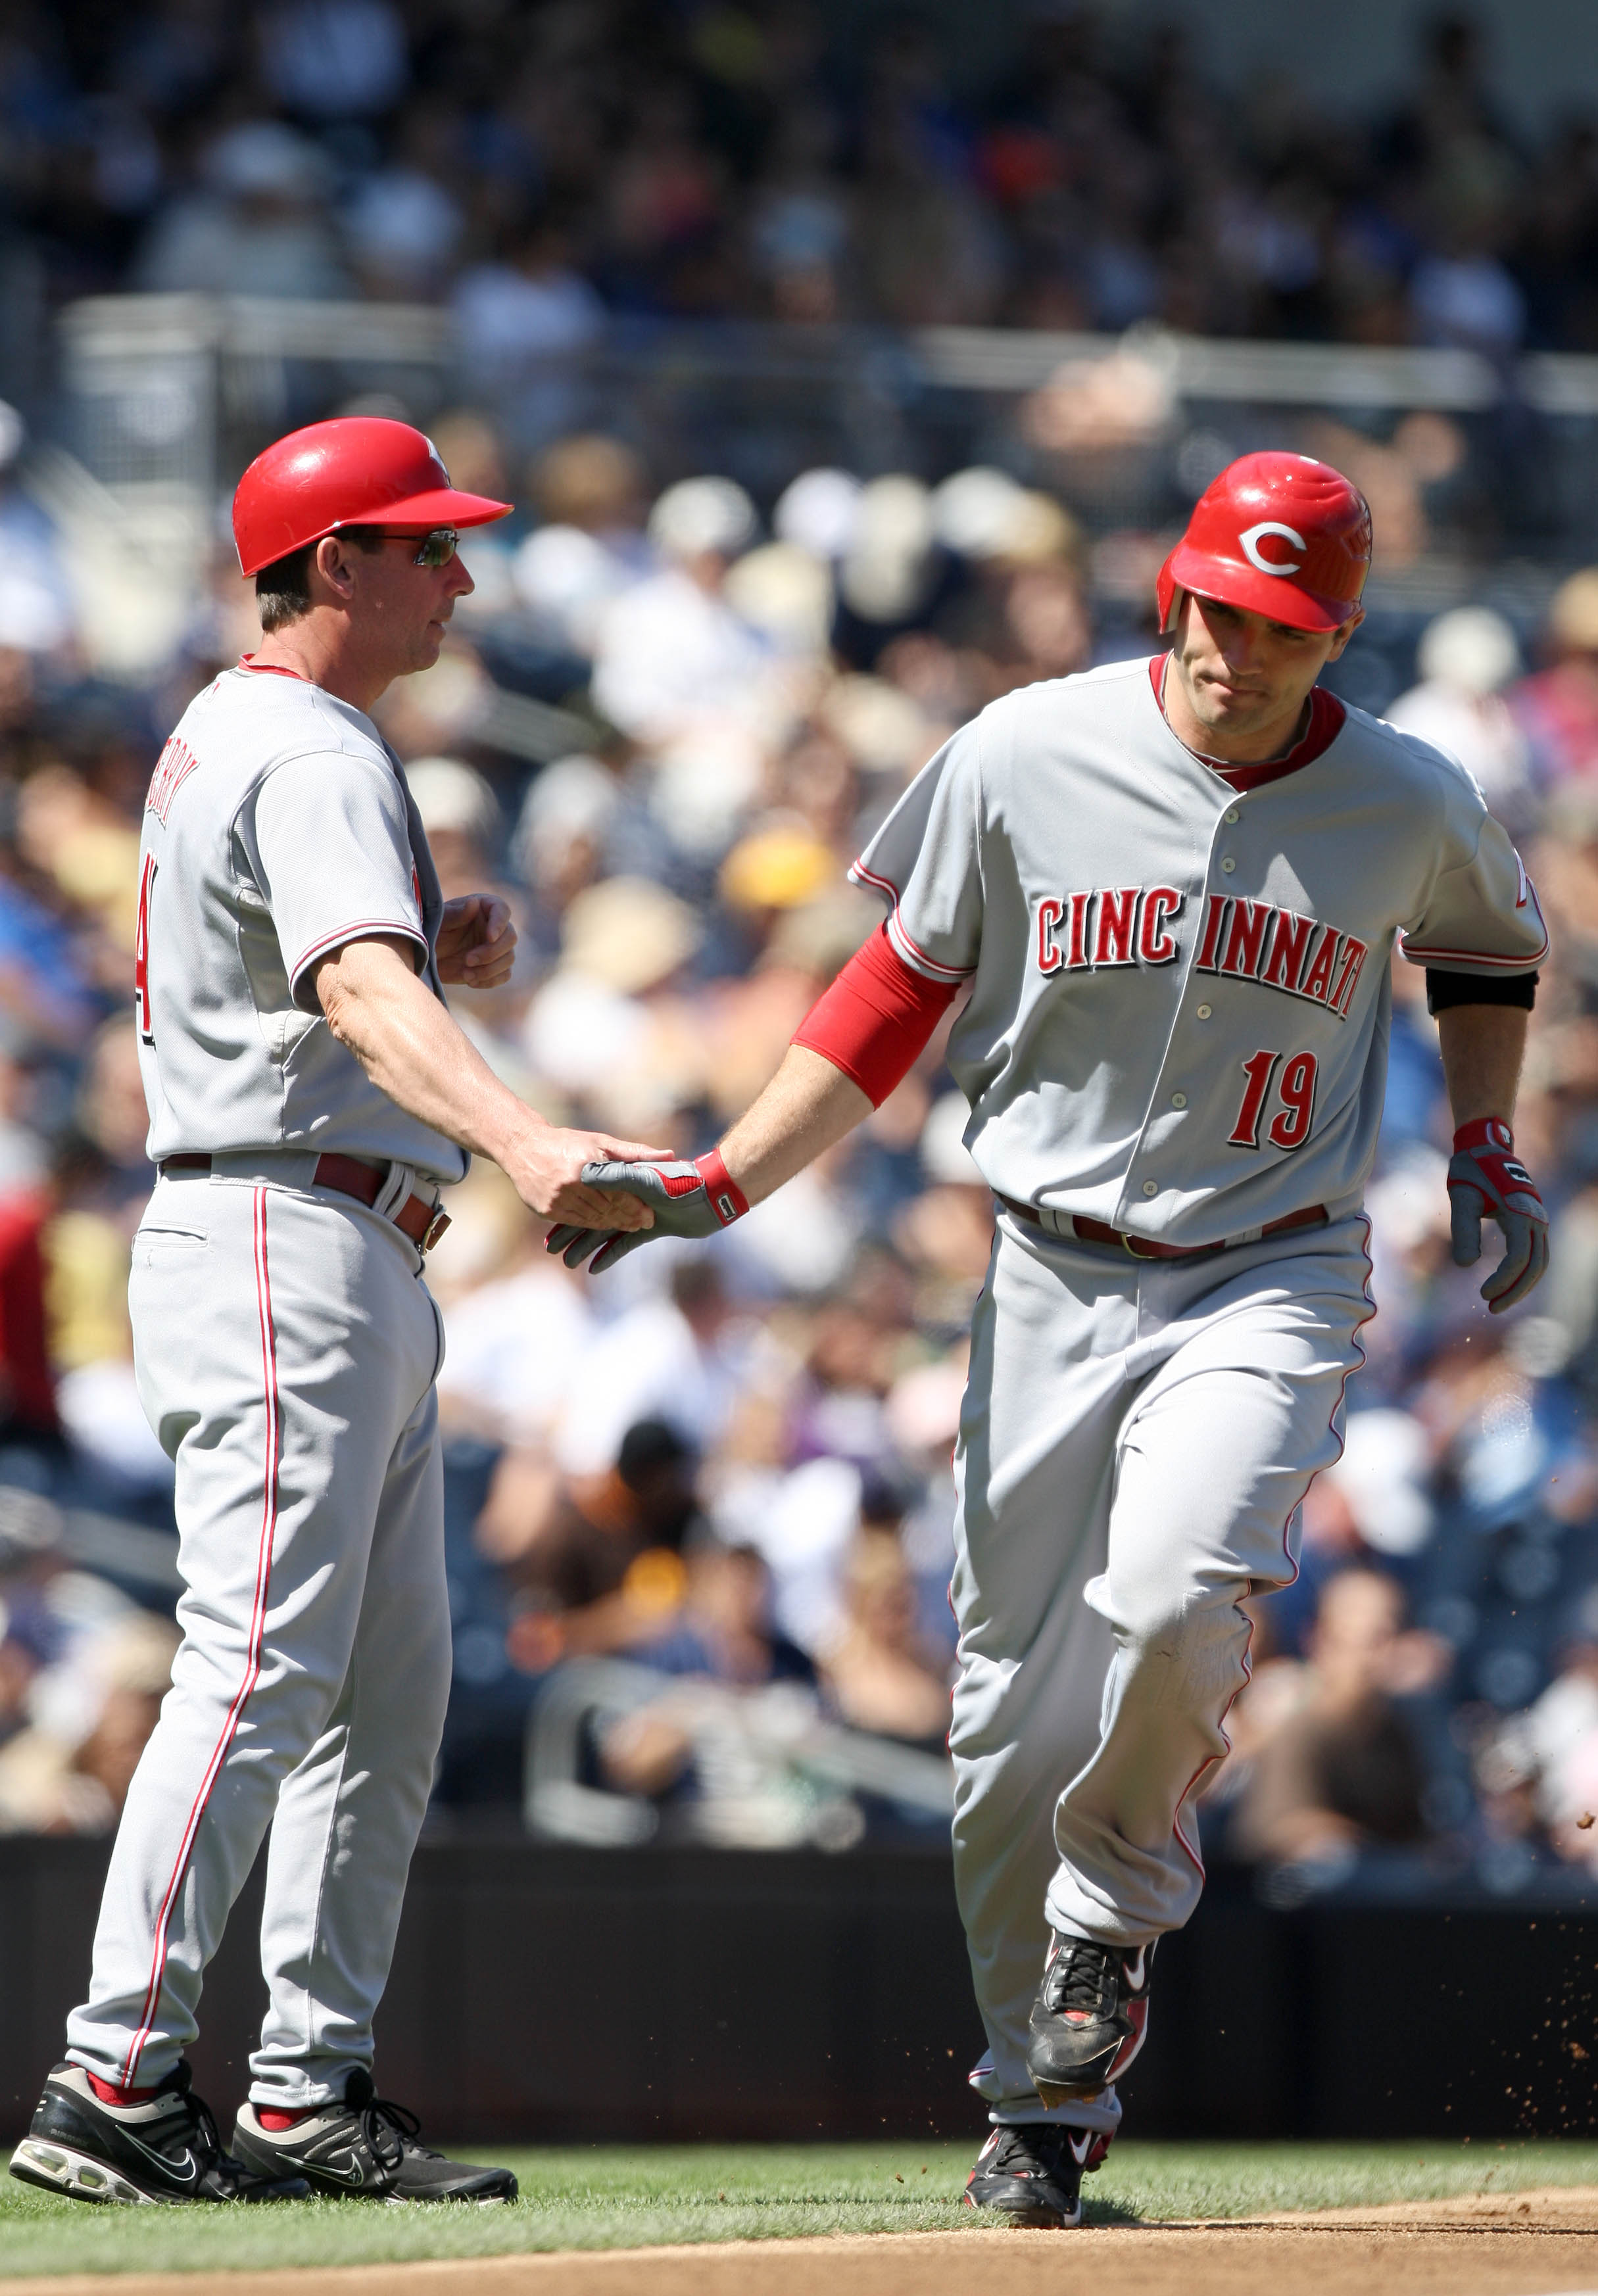 SAN DIEGO, CA - SEPTEMBER 26:  Joey Votto #19 of Cincinnati Reds is greeted by third base coach Mark Berry as he rounds the base after hitting a solo home run against the San Diego Padres during the first inning of their MLB game on September 26, 2010 at